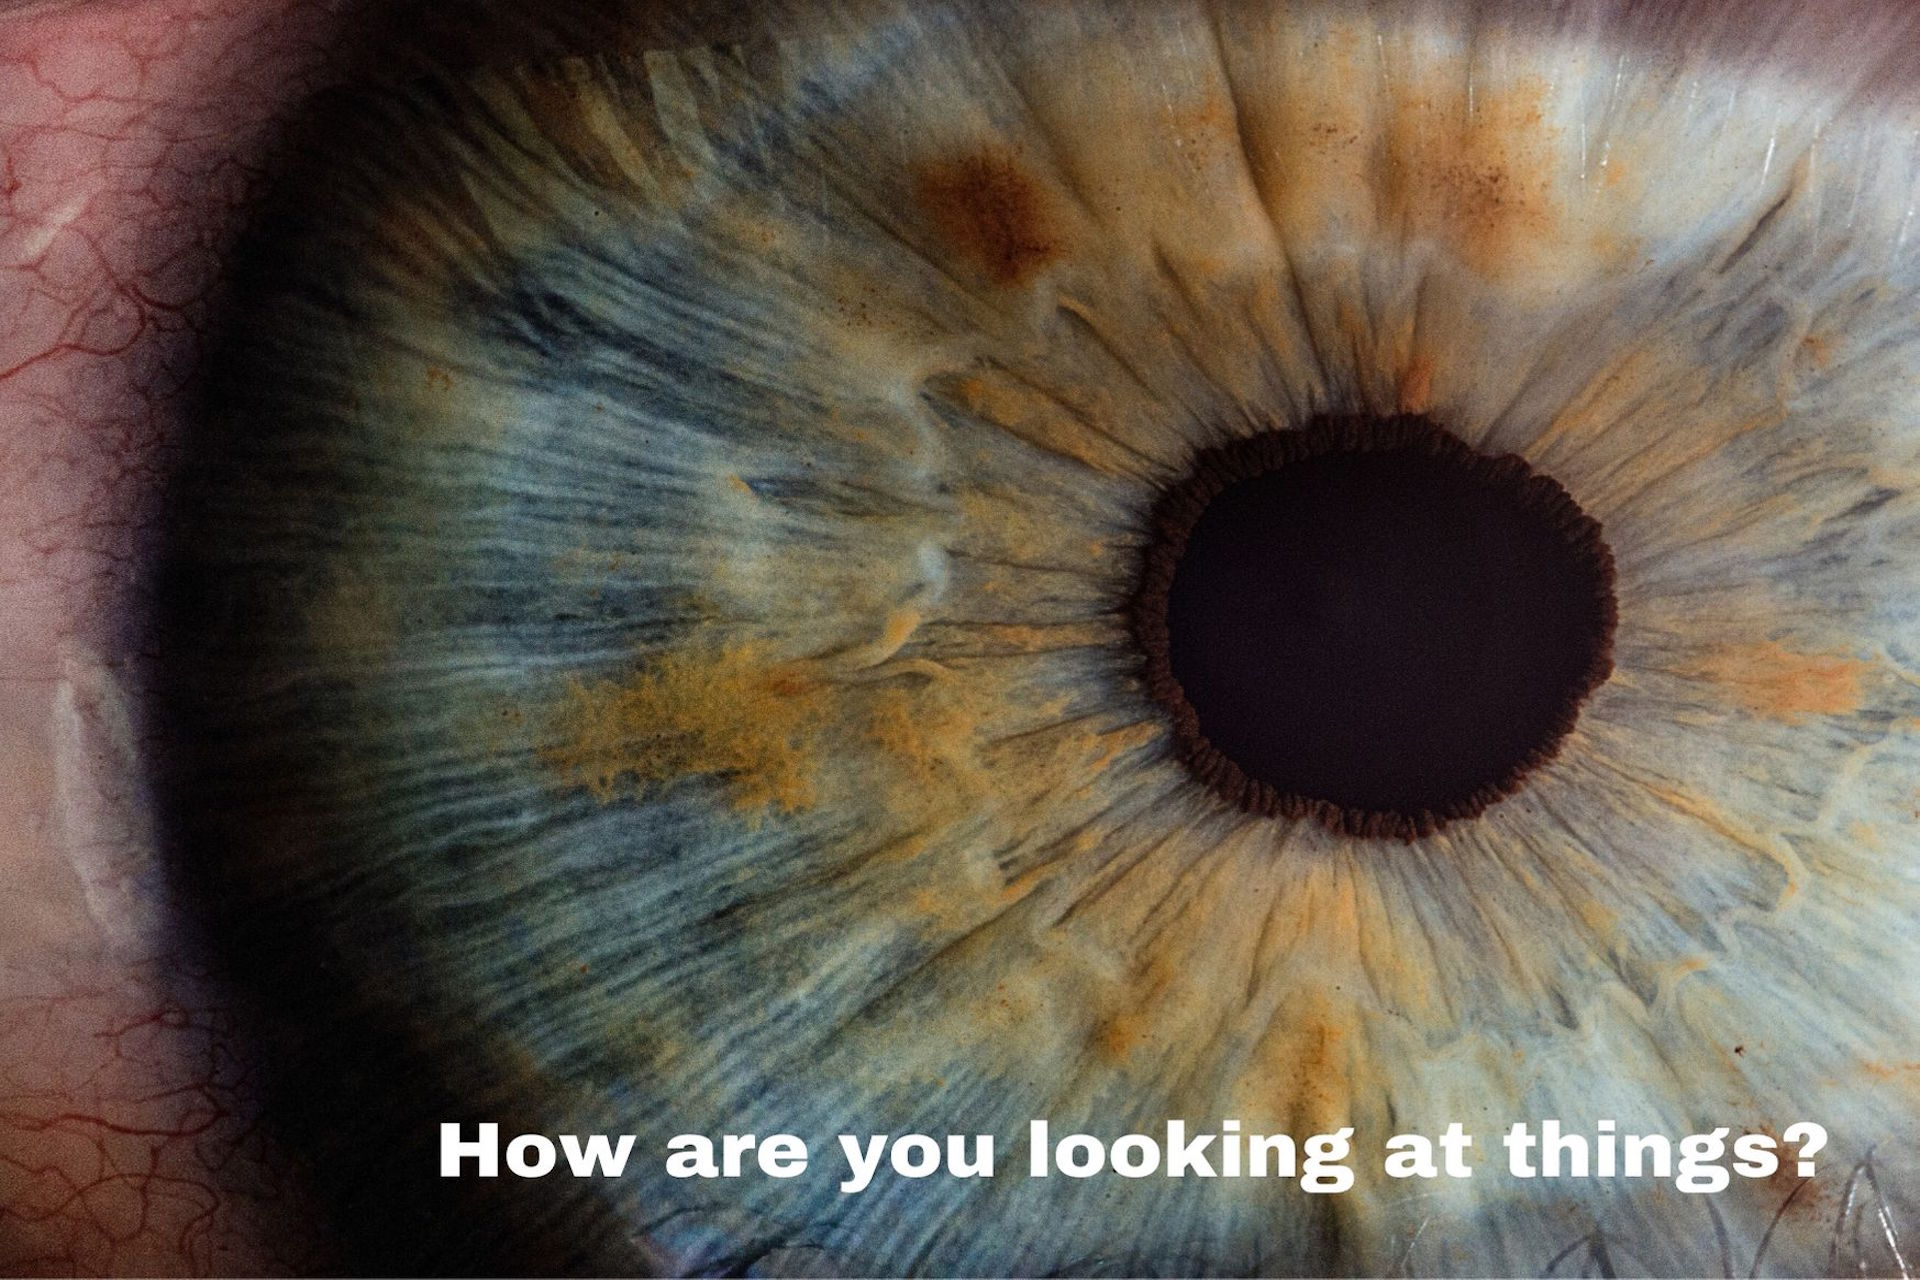 How are you looking at things?